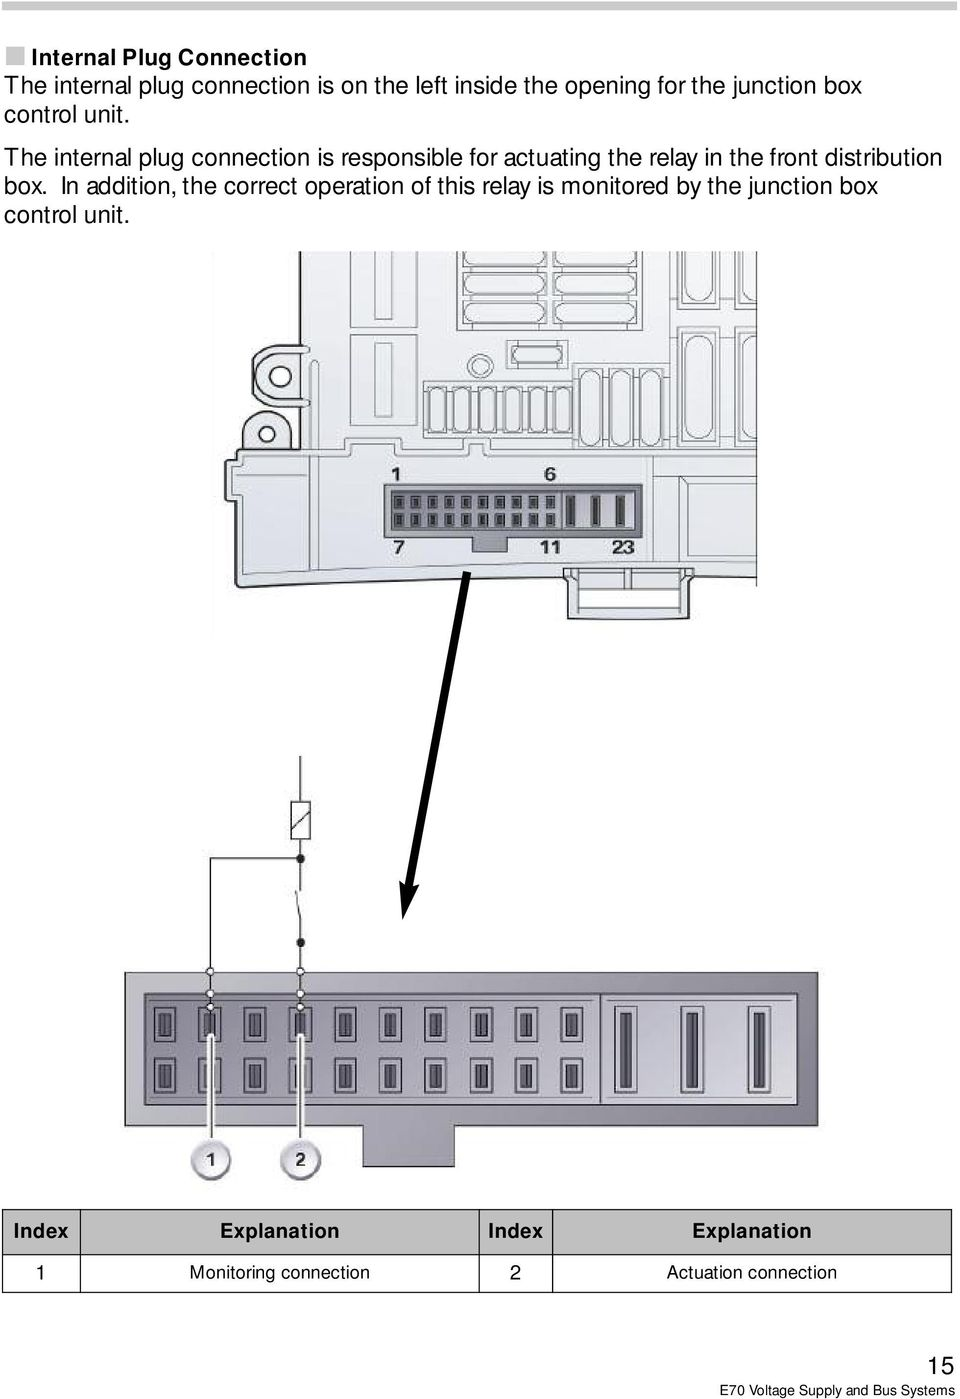 E70 Voltage Supply And Bus Systems Pdf Diagram In Addition Switch 5 Pin Relay Wiring Besides The Internal Plug Connection Is Responsible For Actuating Front Distribution Box